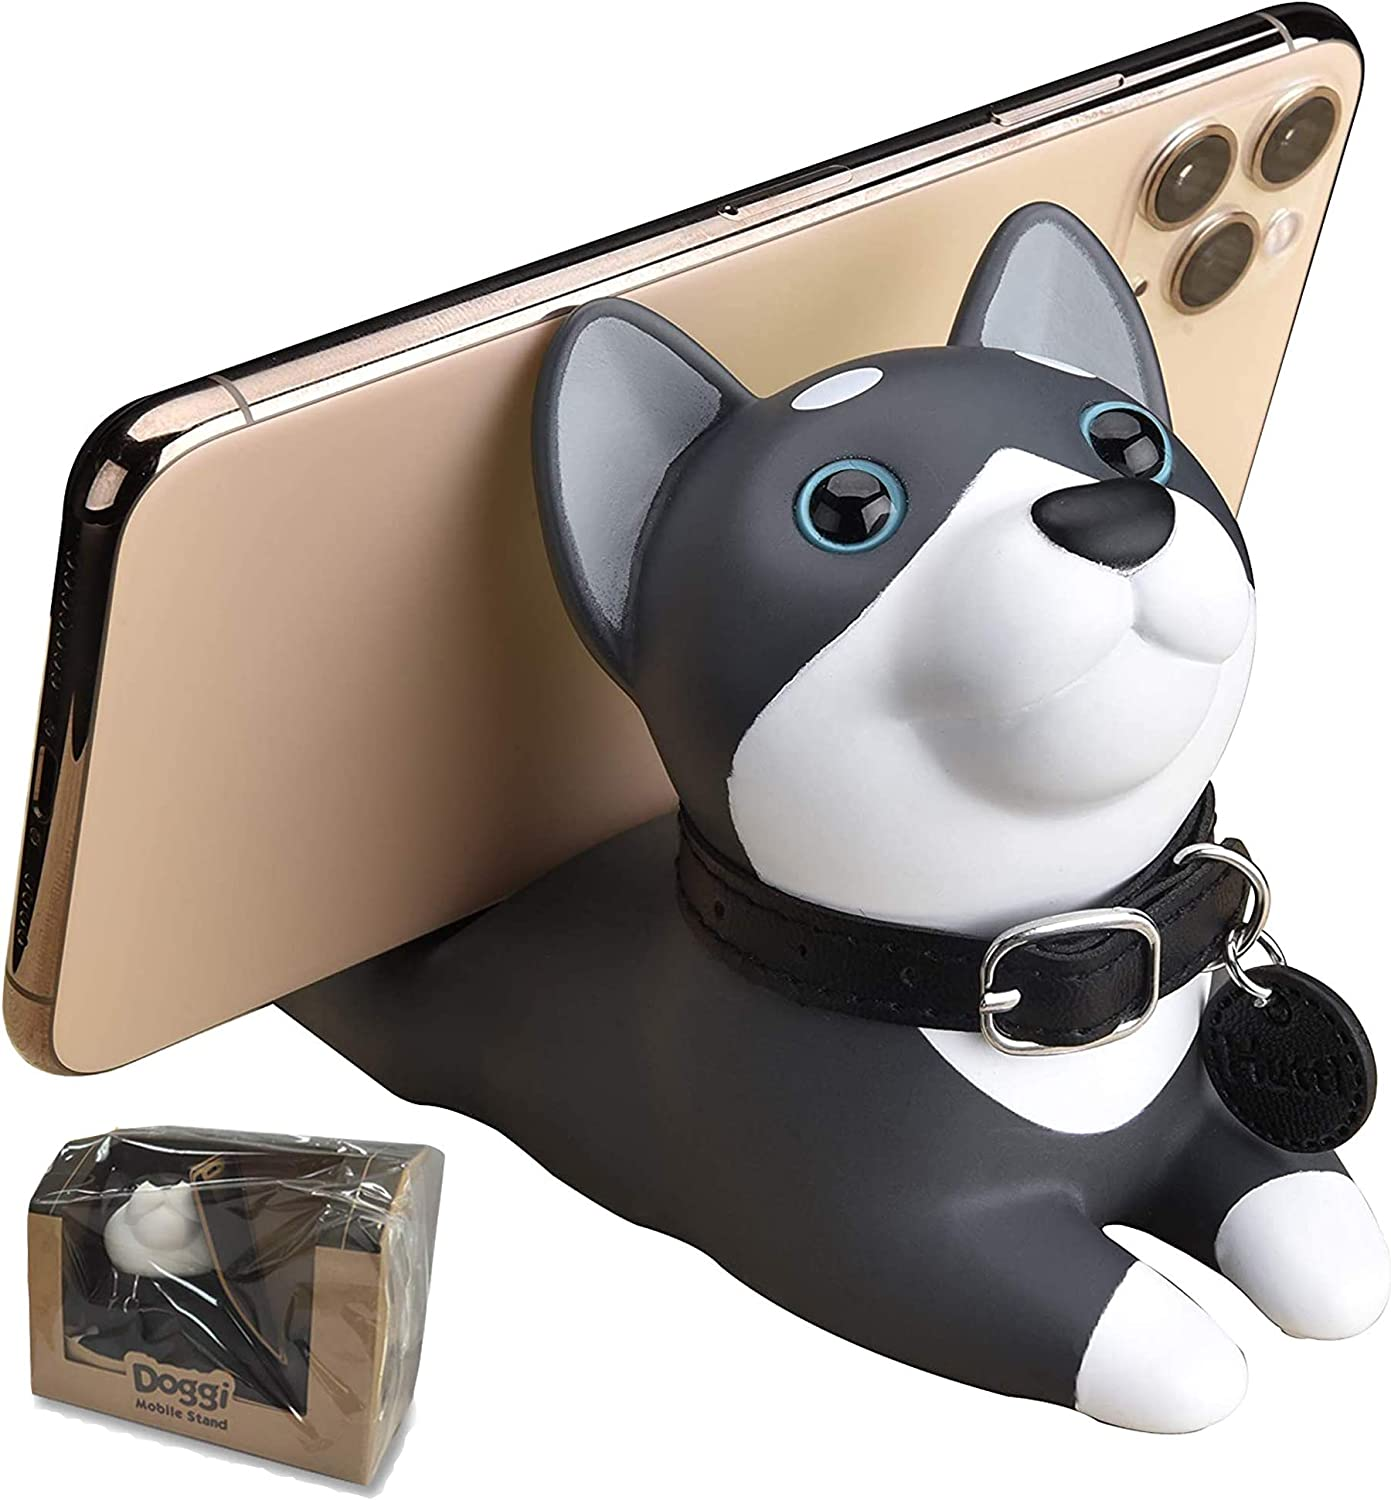 Cute Puppy Dog Desk Cell Phone Stand Holder Cartoon Smartphone Holder Bracket Ornament for Desk,Husky